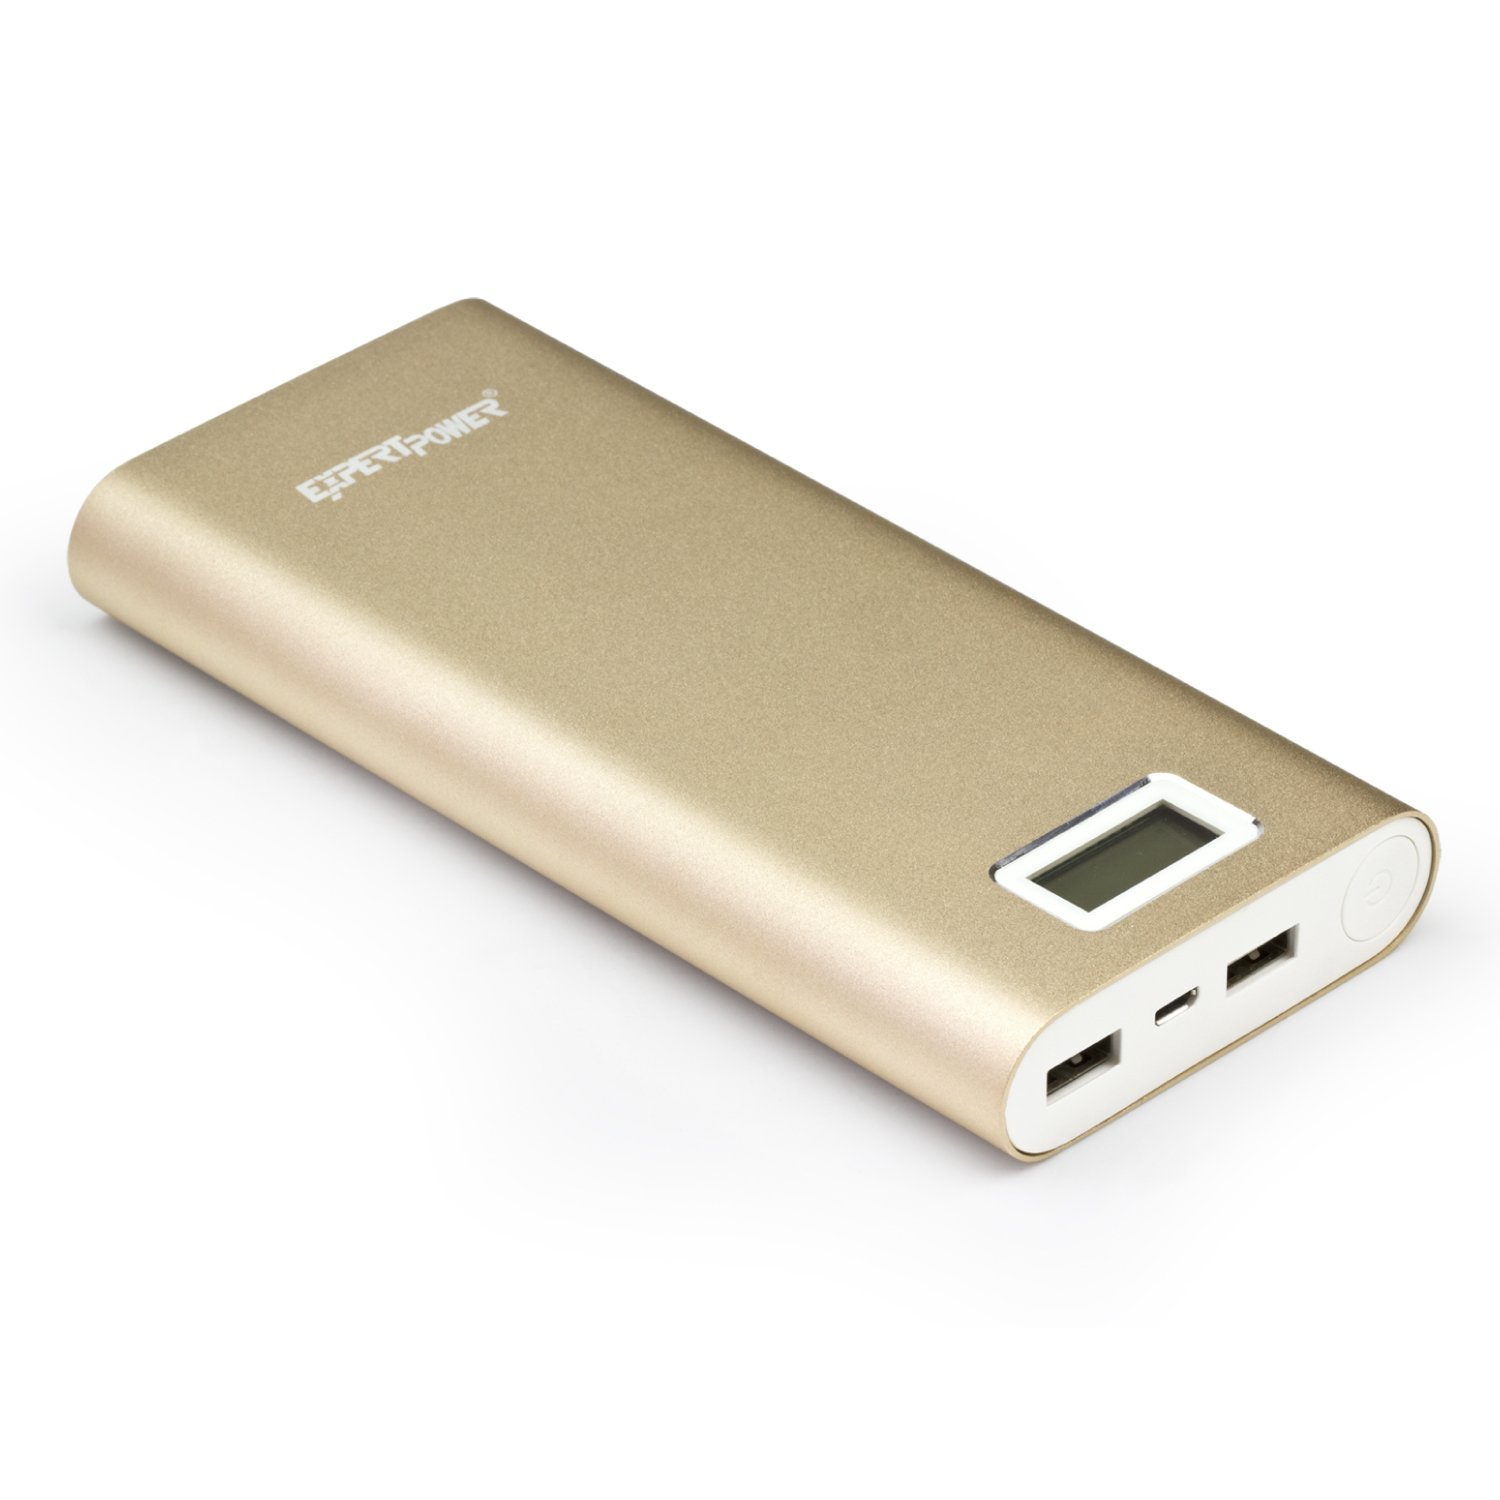 ExpertPower 20000mAh Ultra High Capacity External Battery Power Bank for Smartphone & Tablets